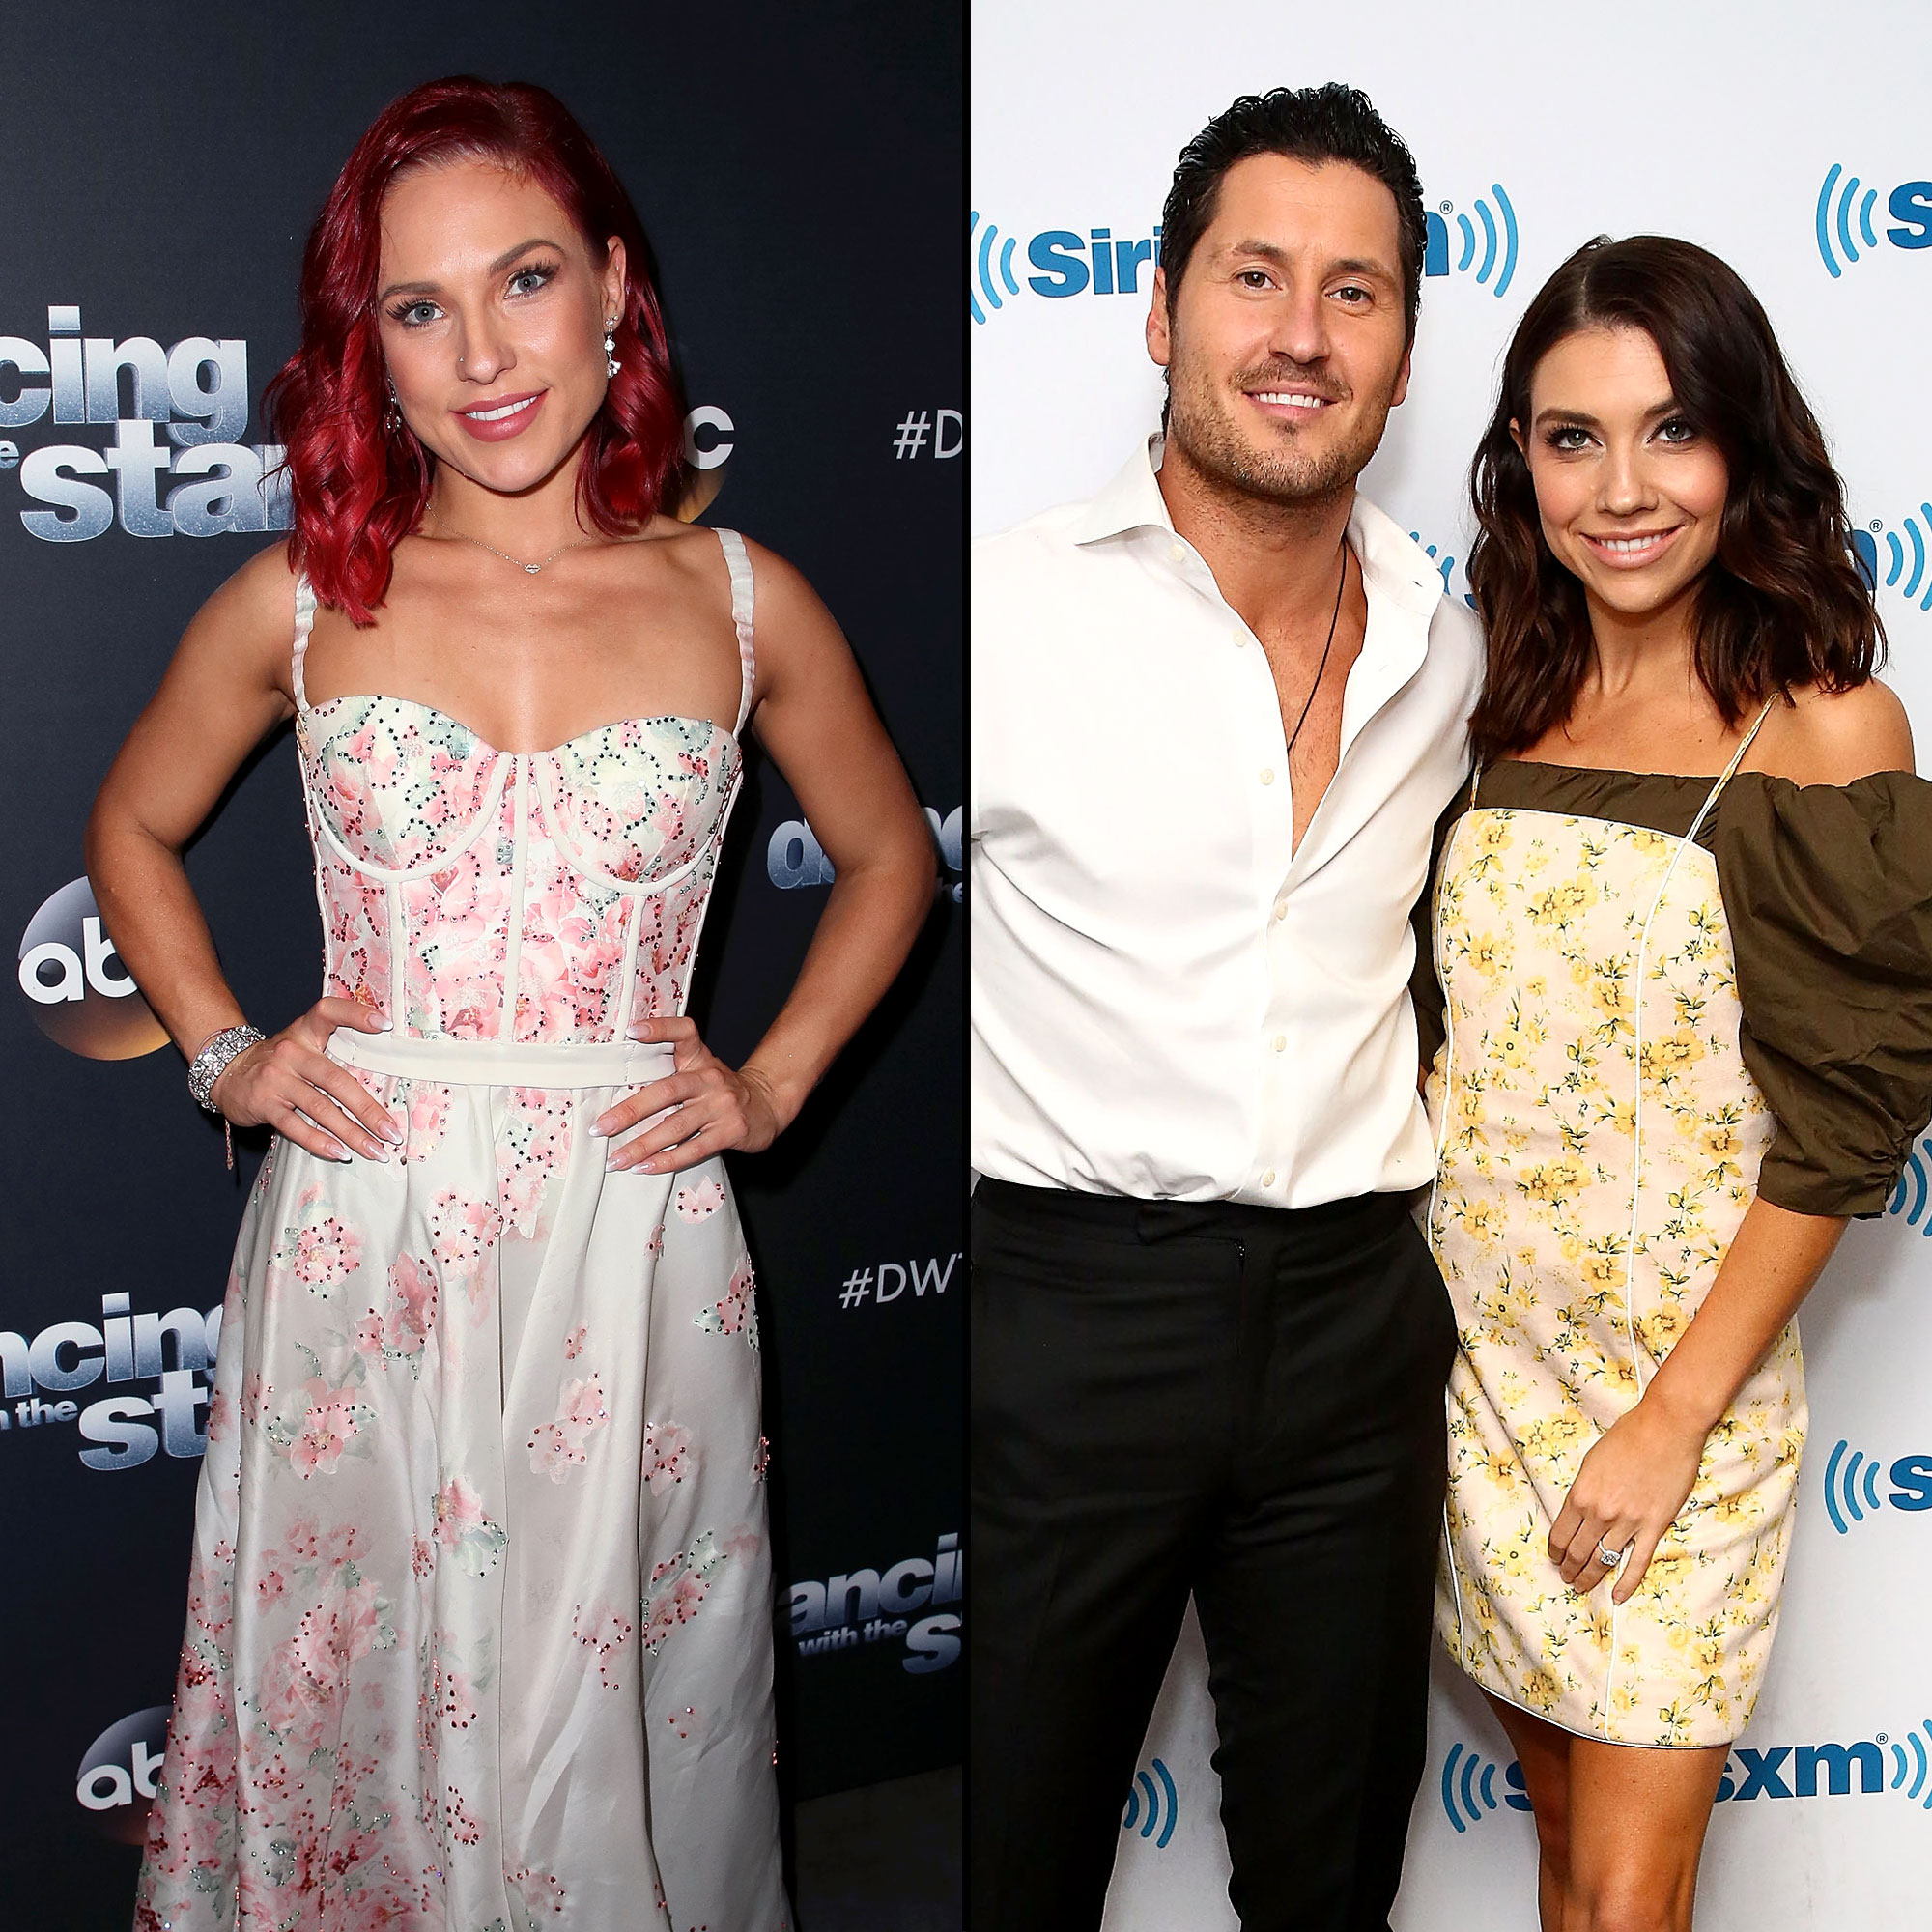 Wedding With the Stars DWTS Pros Val Chmerkovskiy and Jenna Johnson Marry